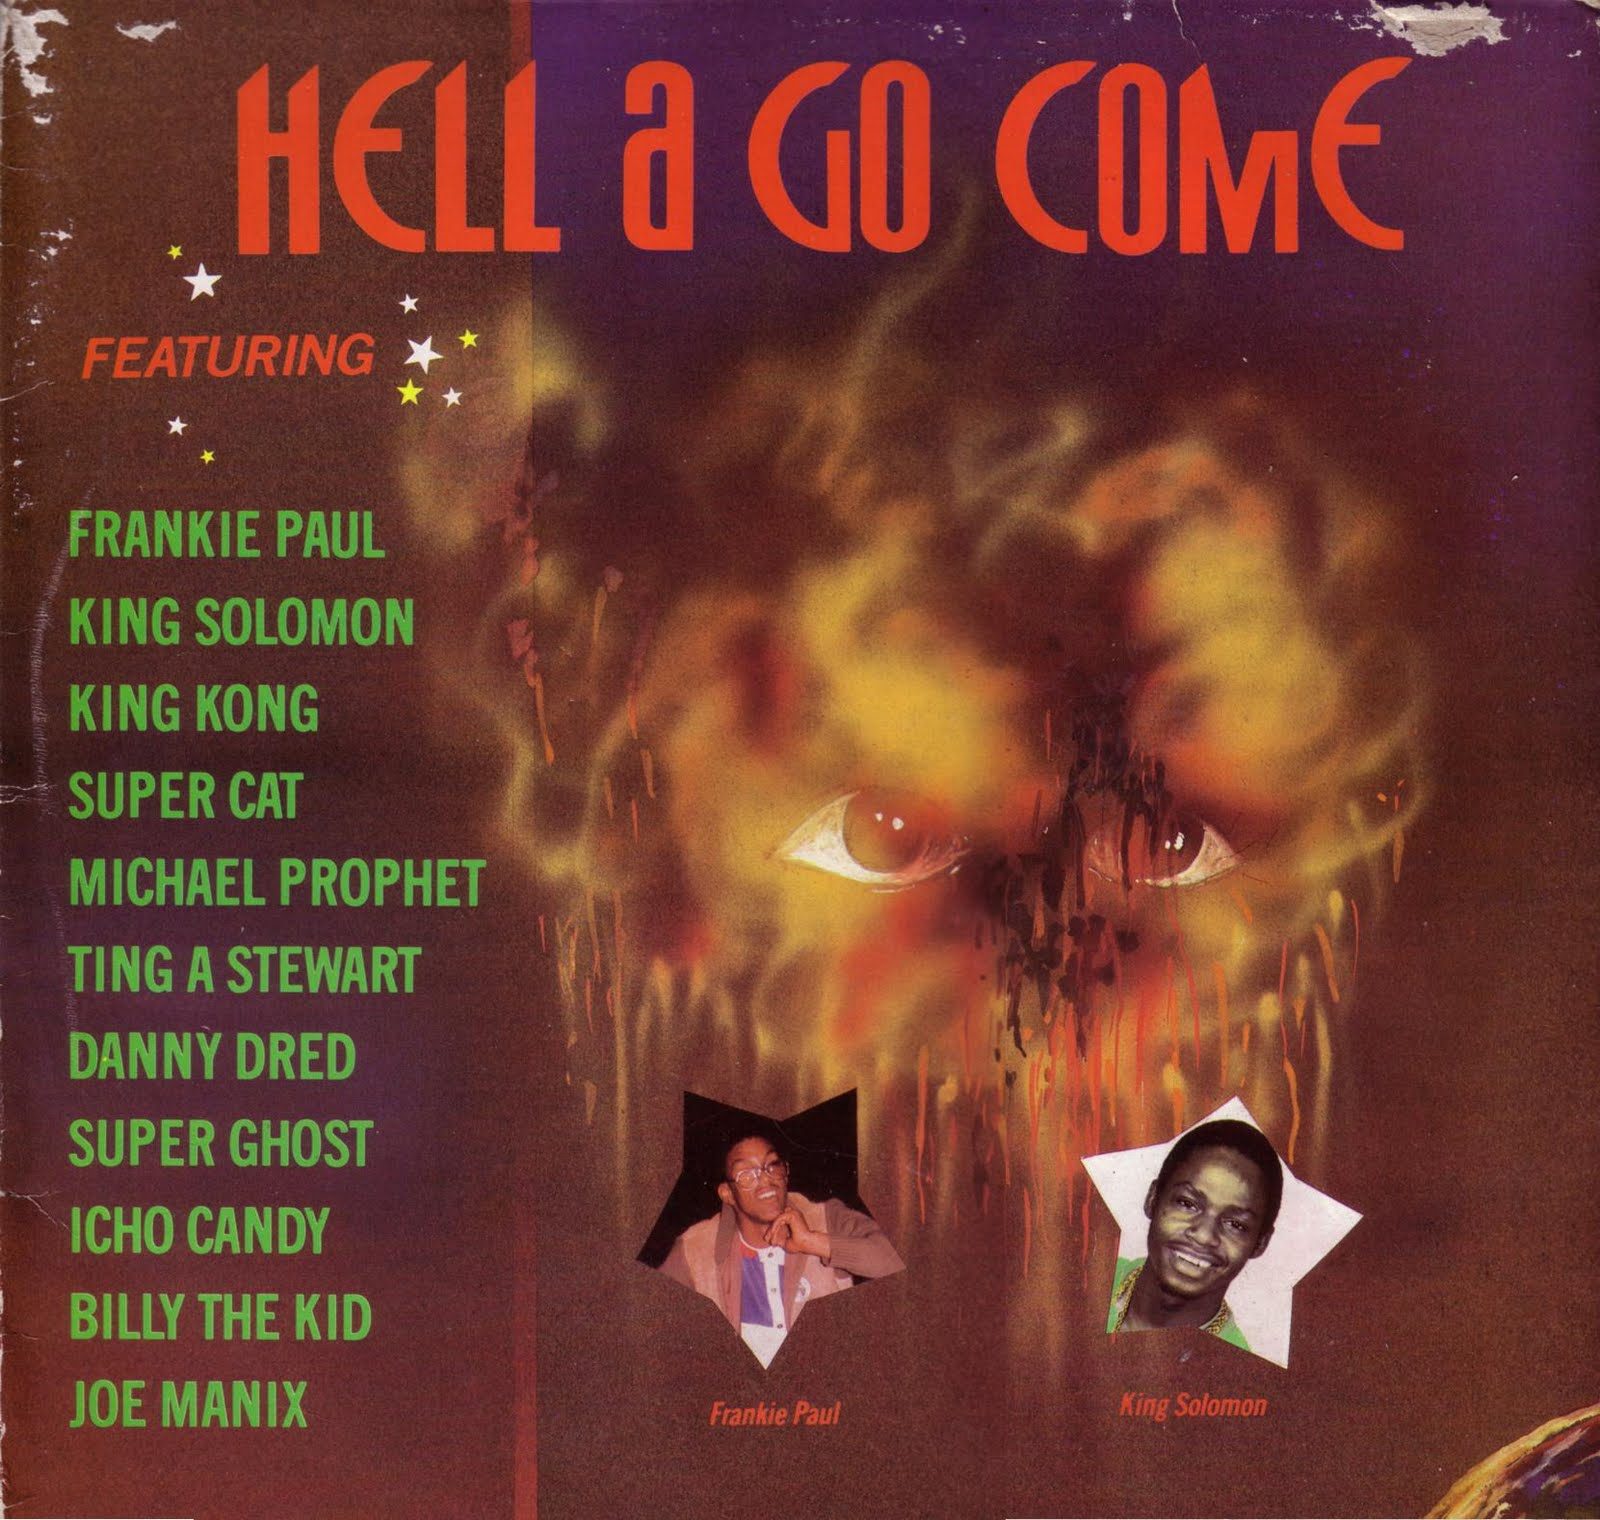 hell a go come(ottey's promotion)1987